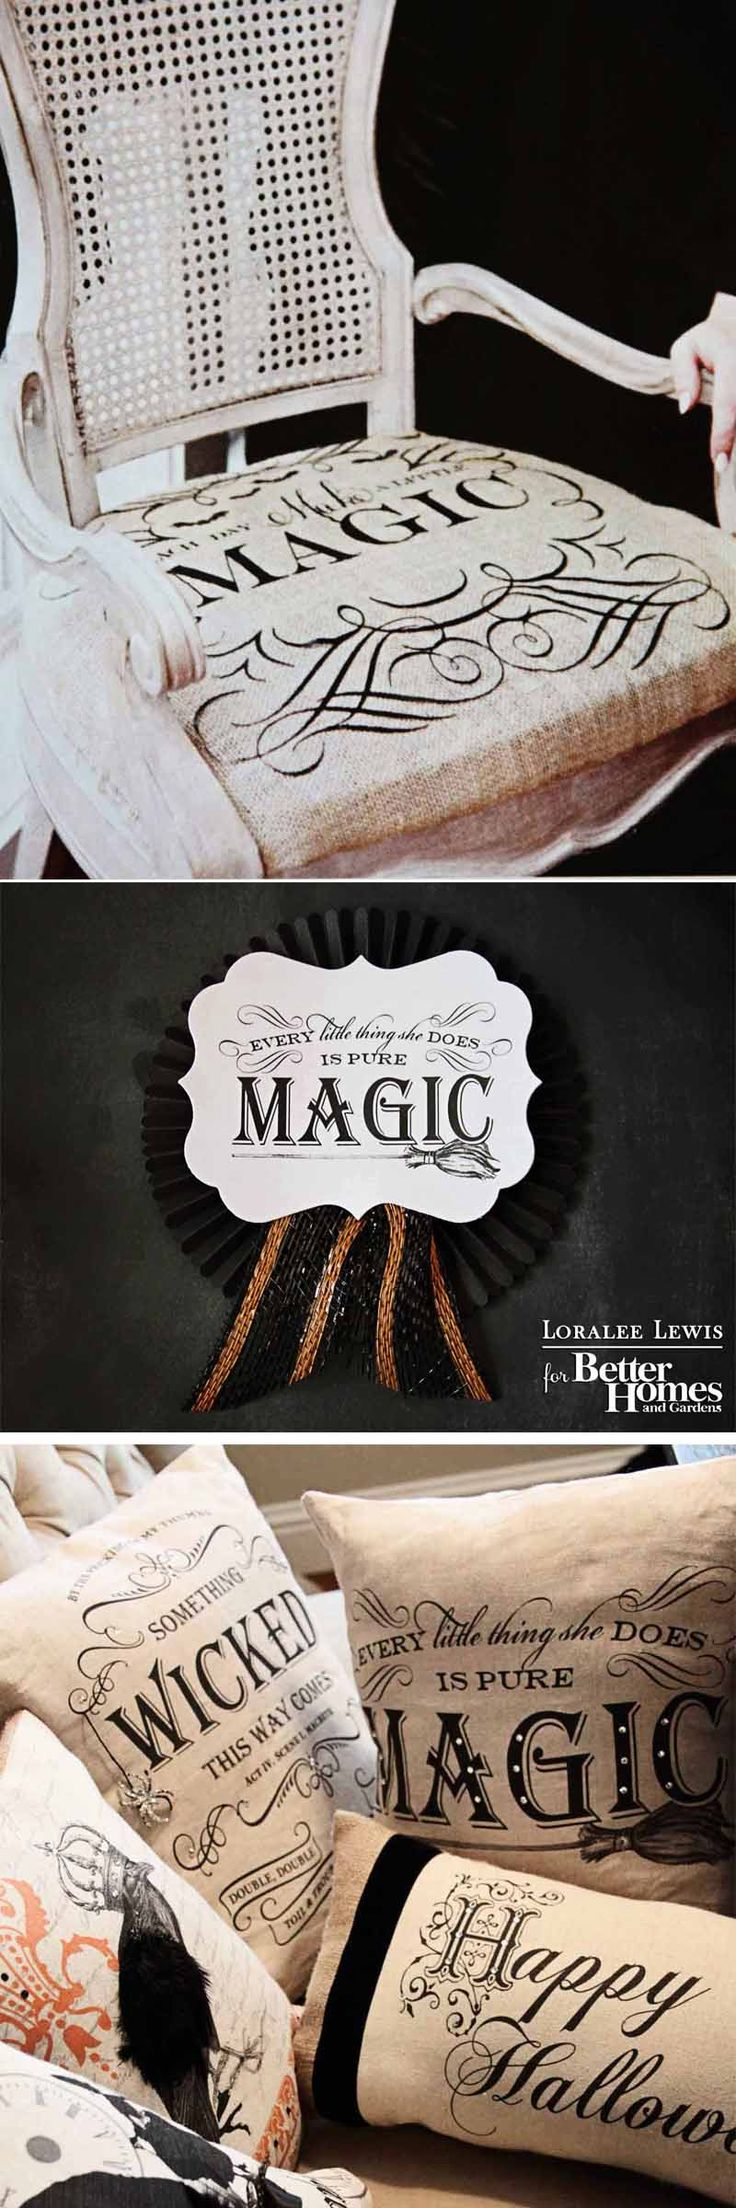 bhg halloween magazine loralee lewis feature top 10 decorating tips for your halloween party